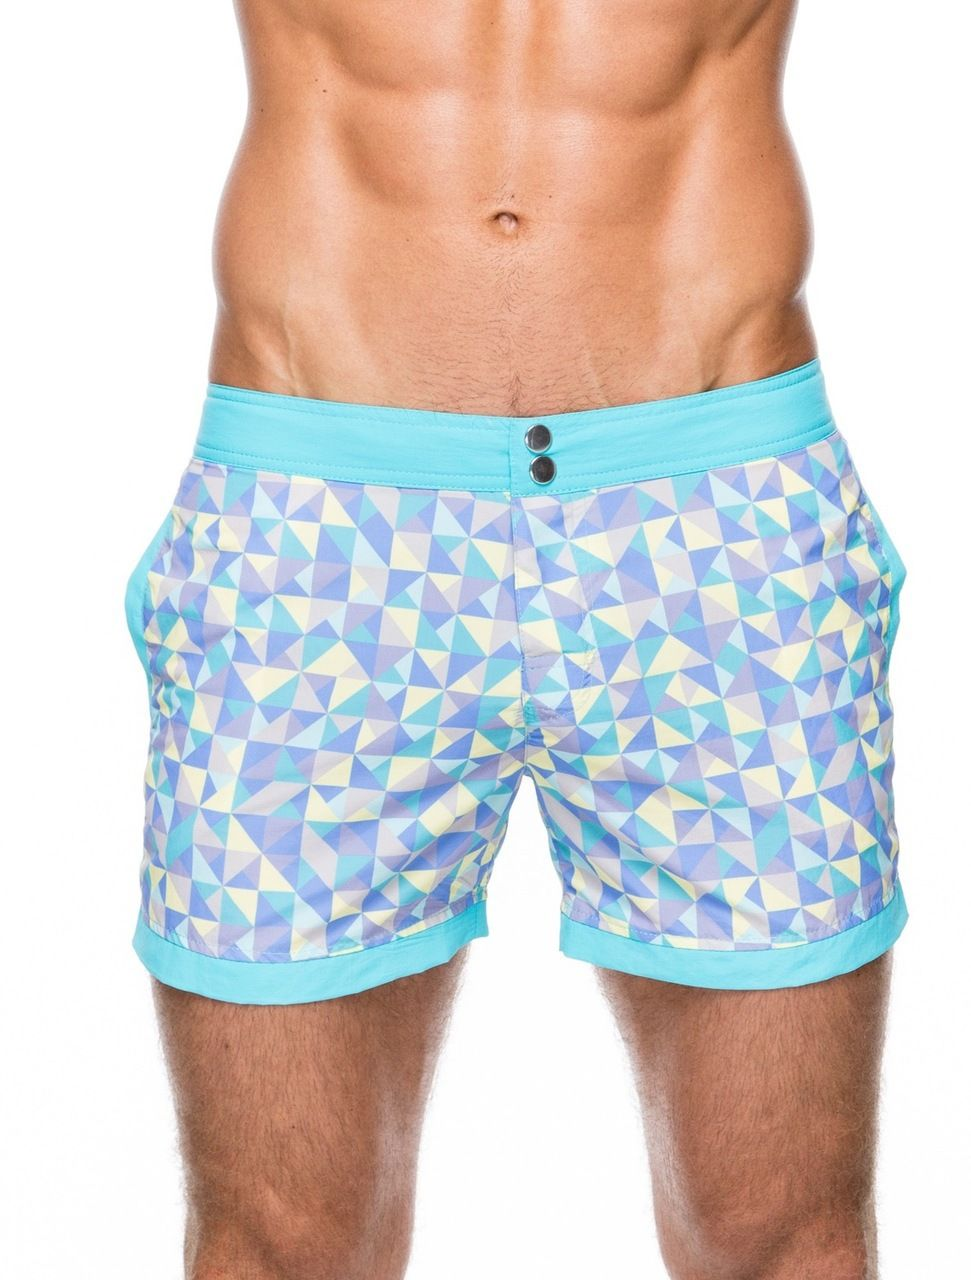 Men's Swimwear – Cabana patterned slim fit swim shorts by teamm8 ...